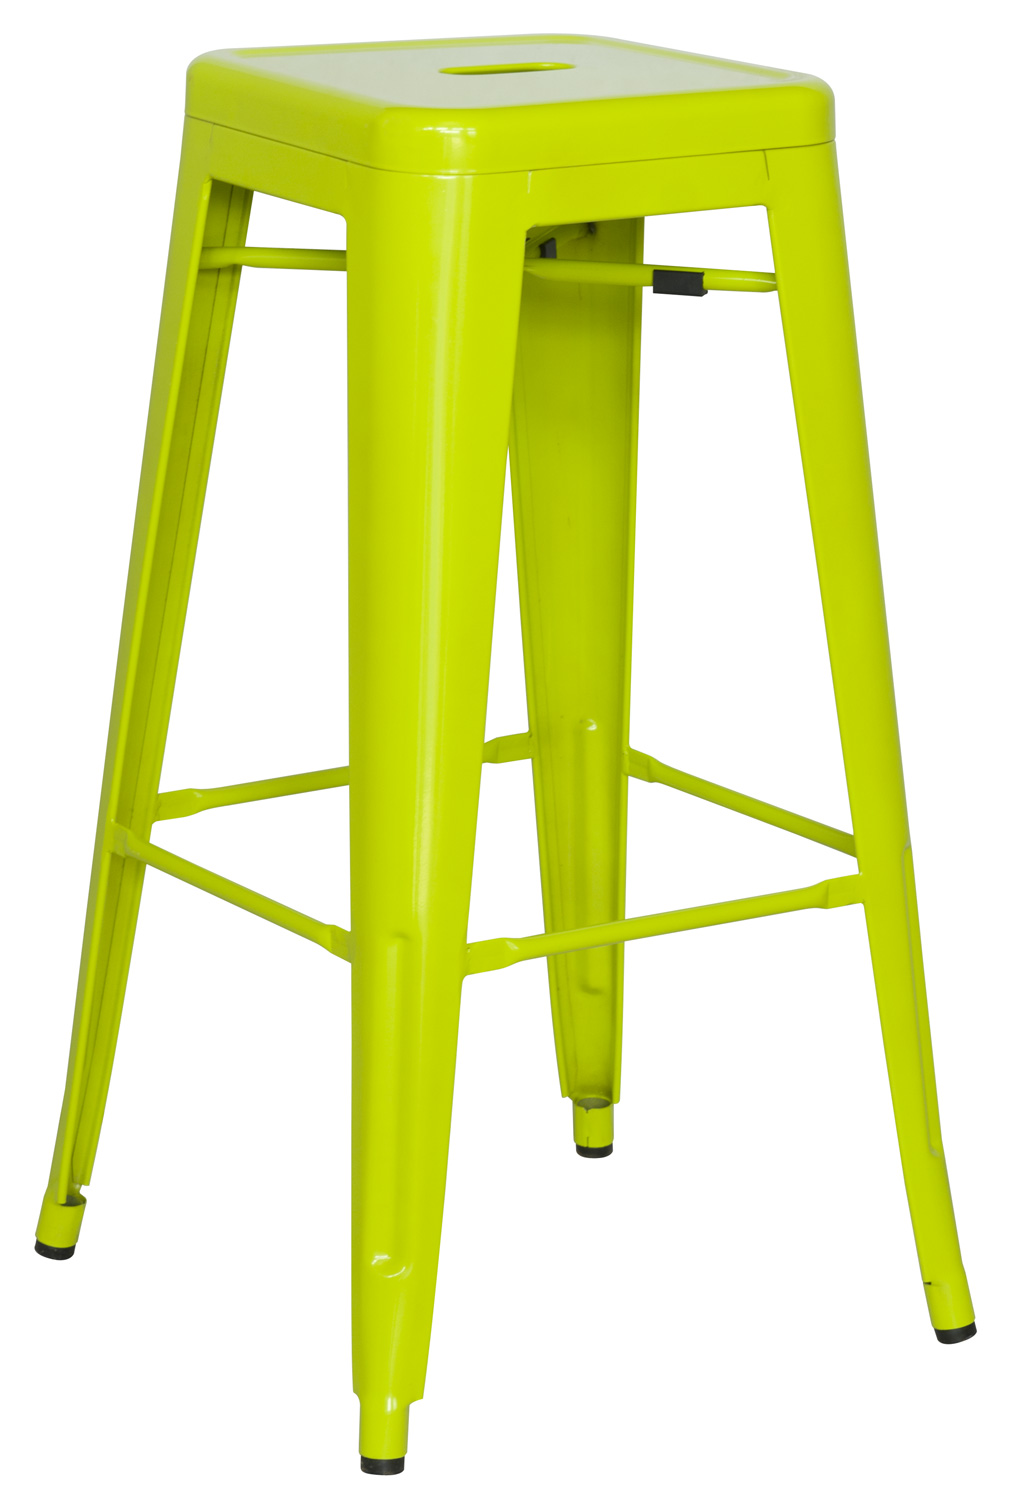 Chintaly Imports 8015 Galvanized Steel Bar Stool Lime